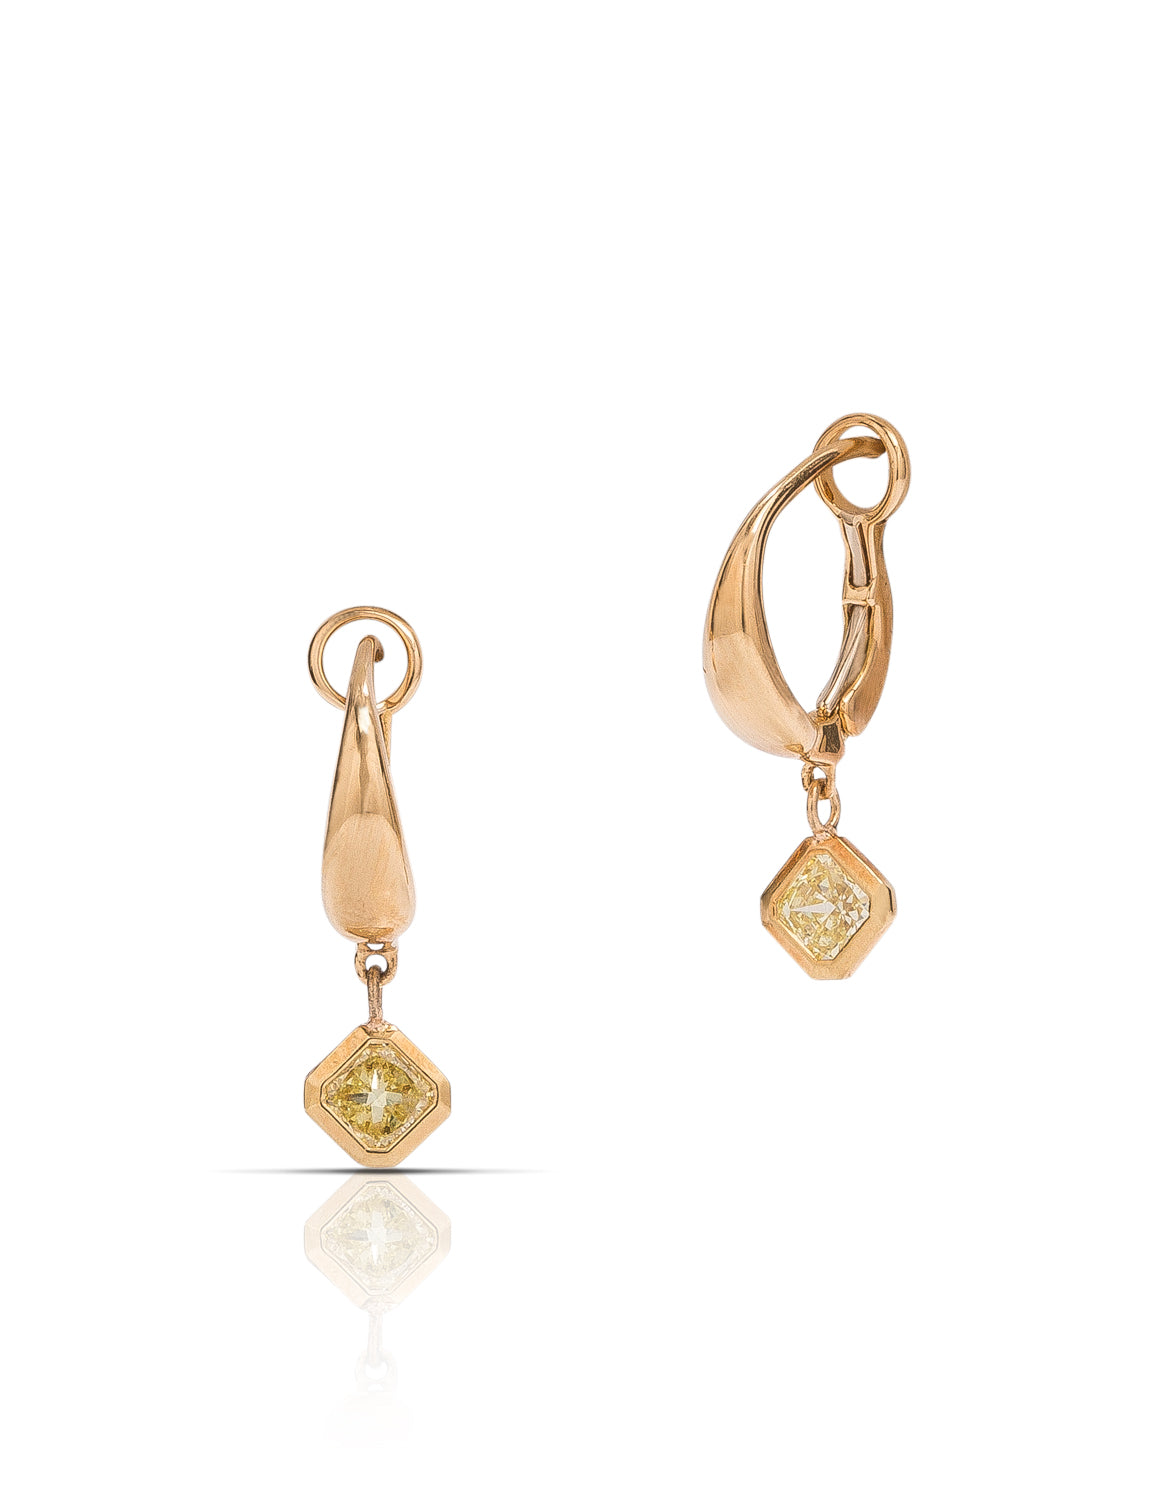 Fancy Yellow Radiant Cut Drop Earrings - Charles Koll Jewellers